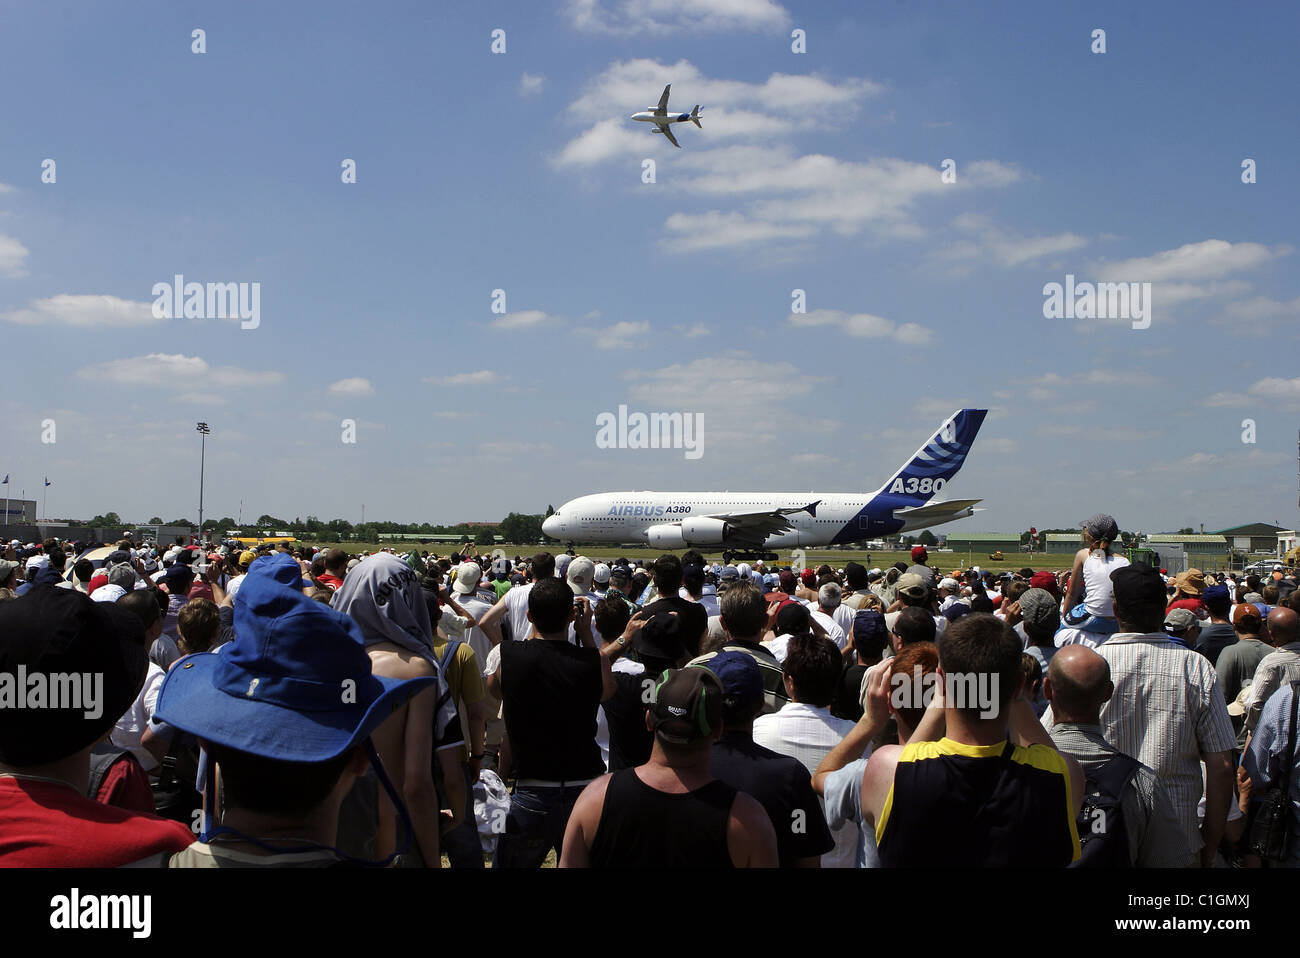 France, Seine Saint Denis, Air and Space exposition of Le Bourget 2005, A380 show - Stock Image